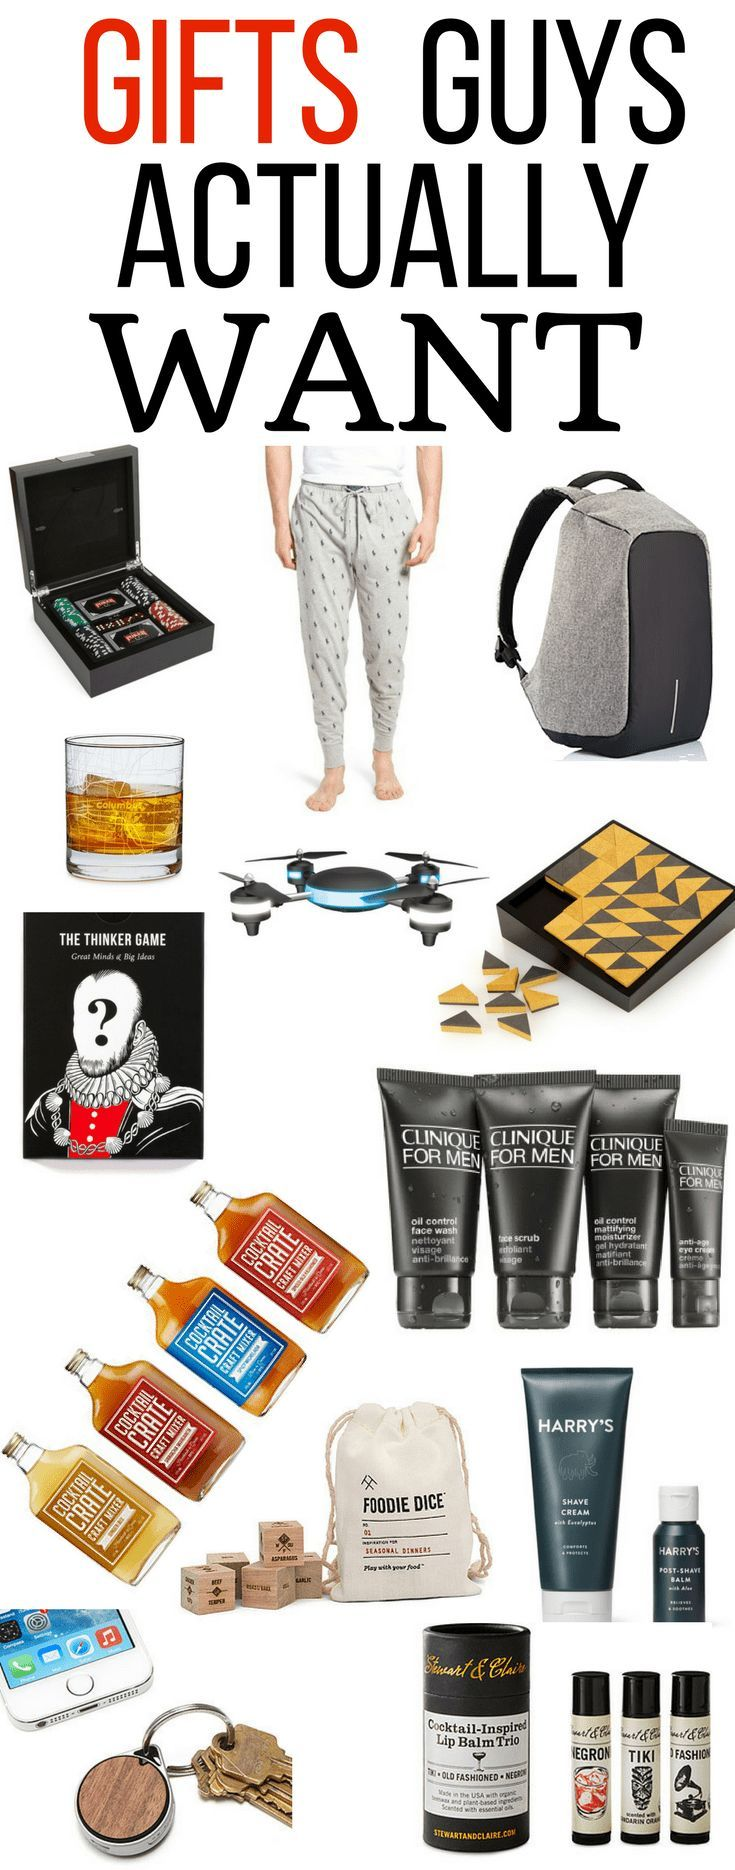 Gifts For Husband Boyfriend Christmas Pas Dad Holiday Ping Men Him Drone Polo Beer